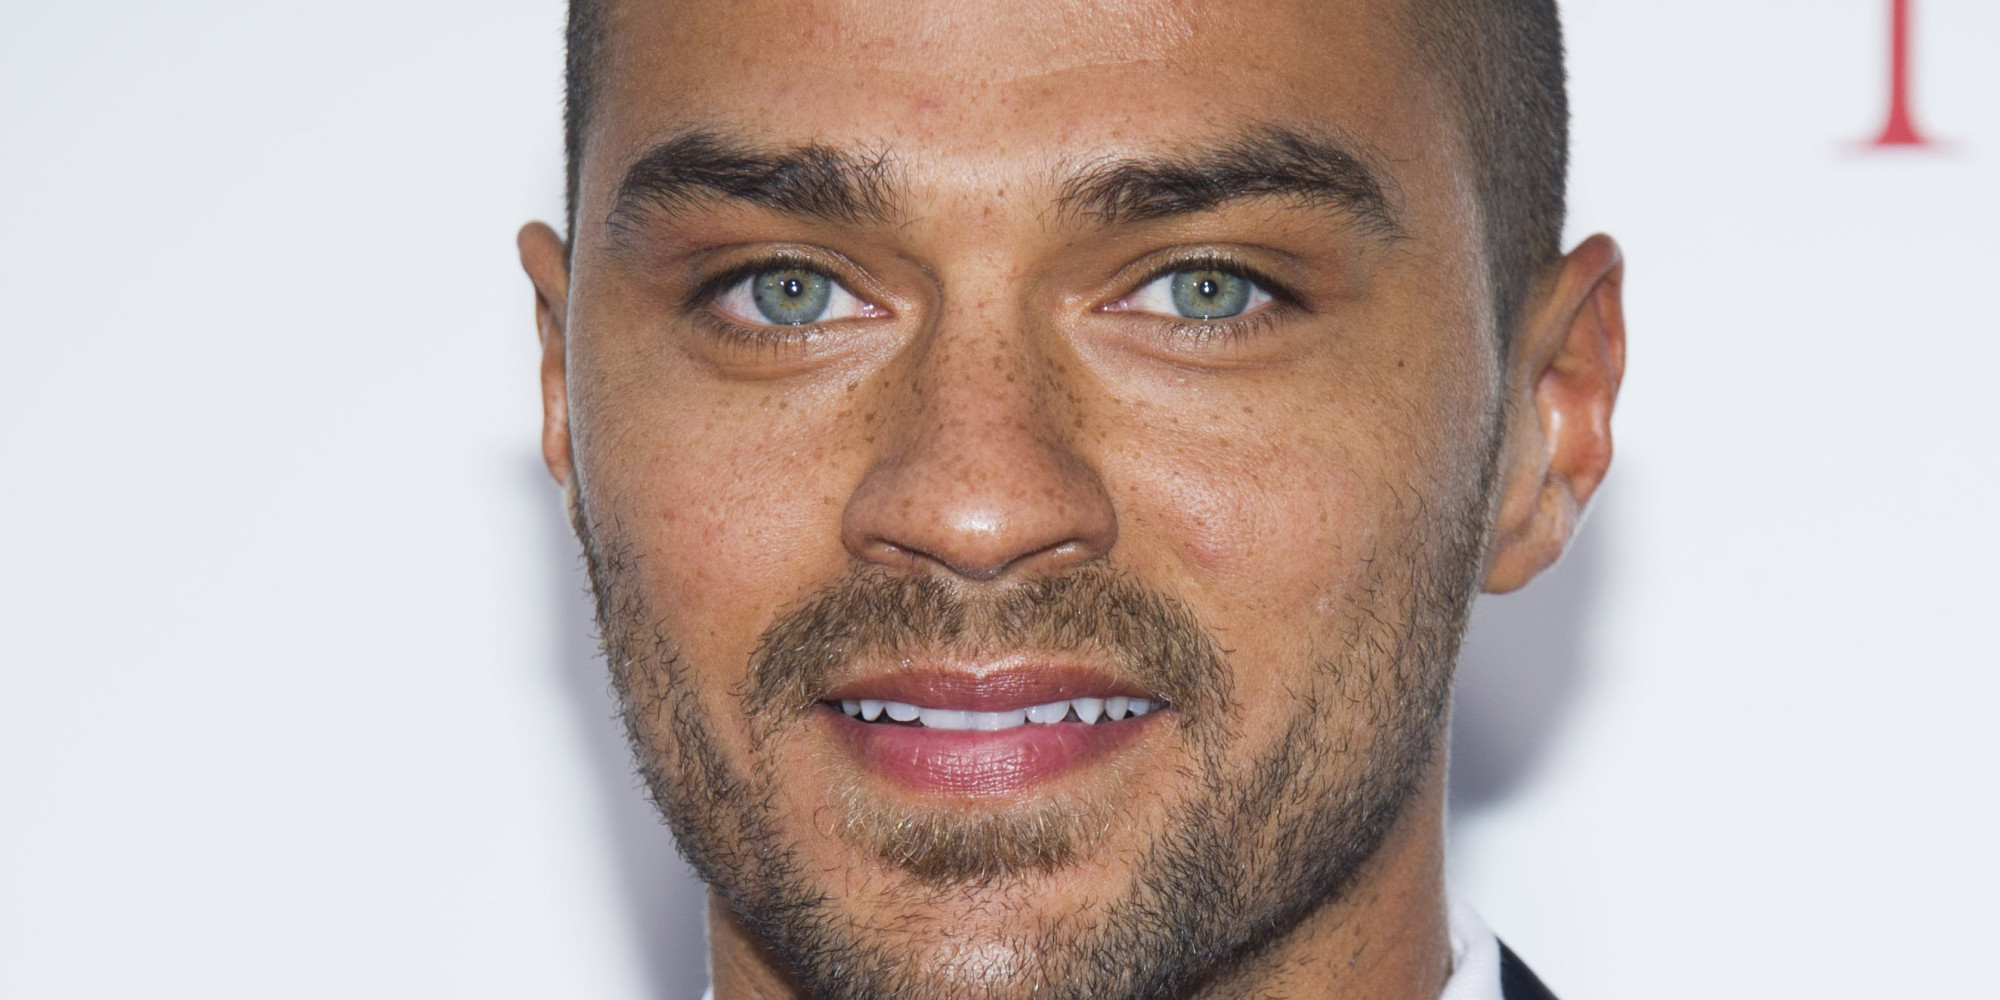 o-jesse-williams-facebook2.jpg